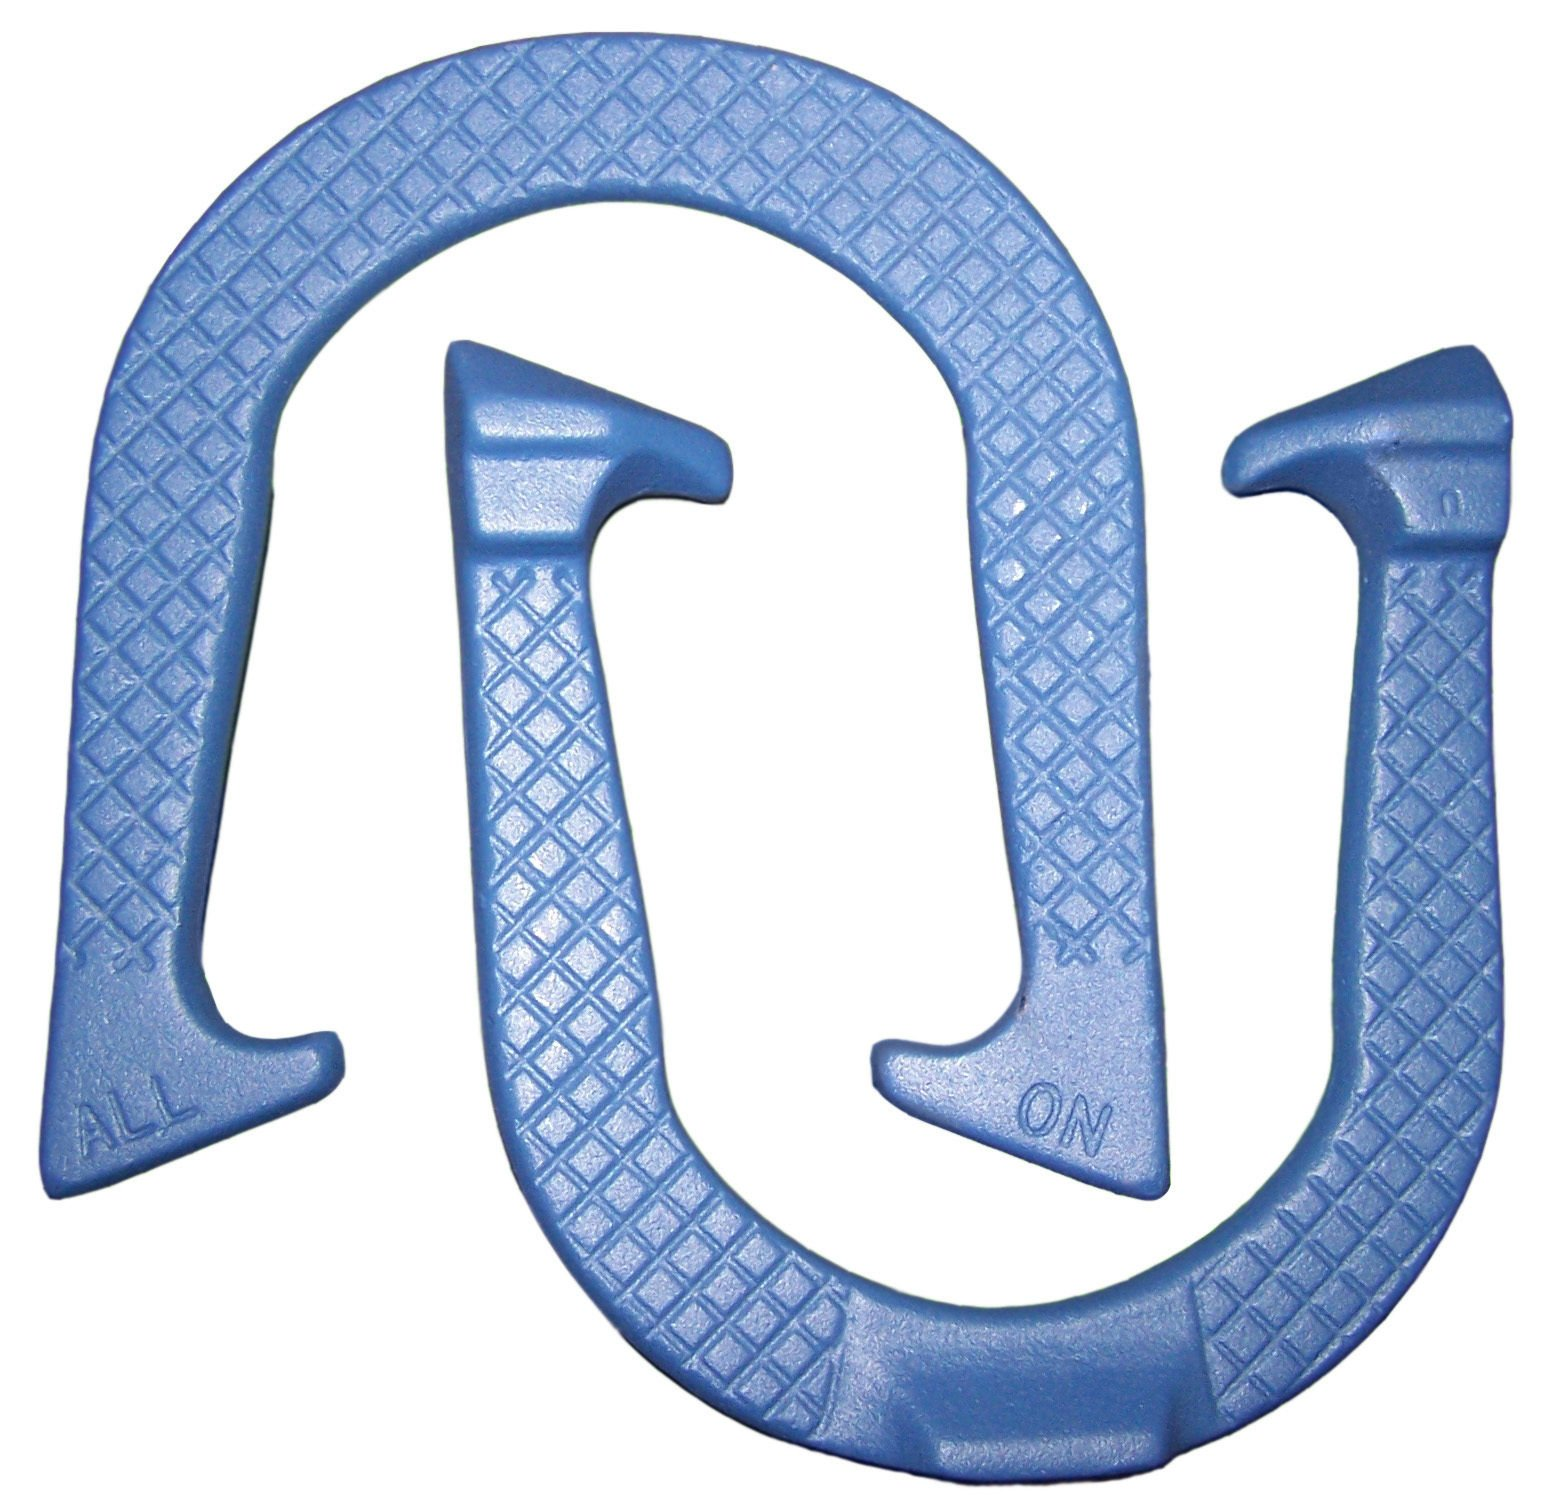 All-On Professional Pitching Horseshoes- Made in The USA! (Blue- Single Pair (2 Shoes))